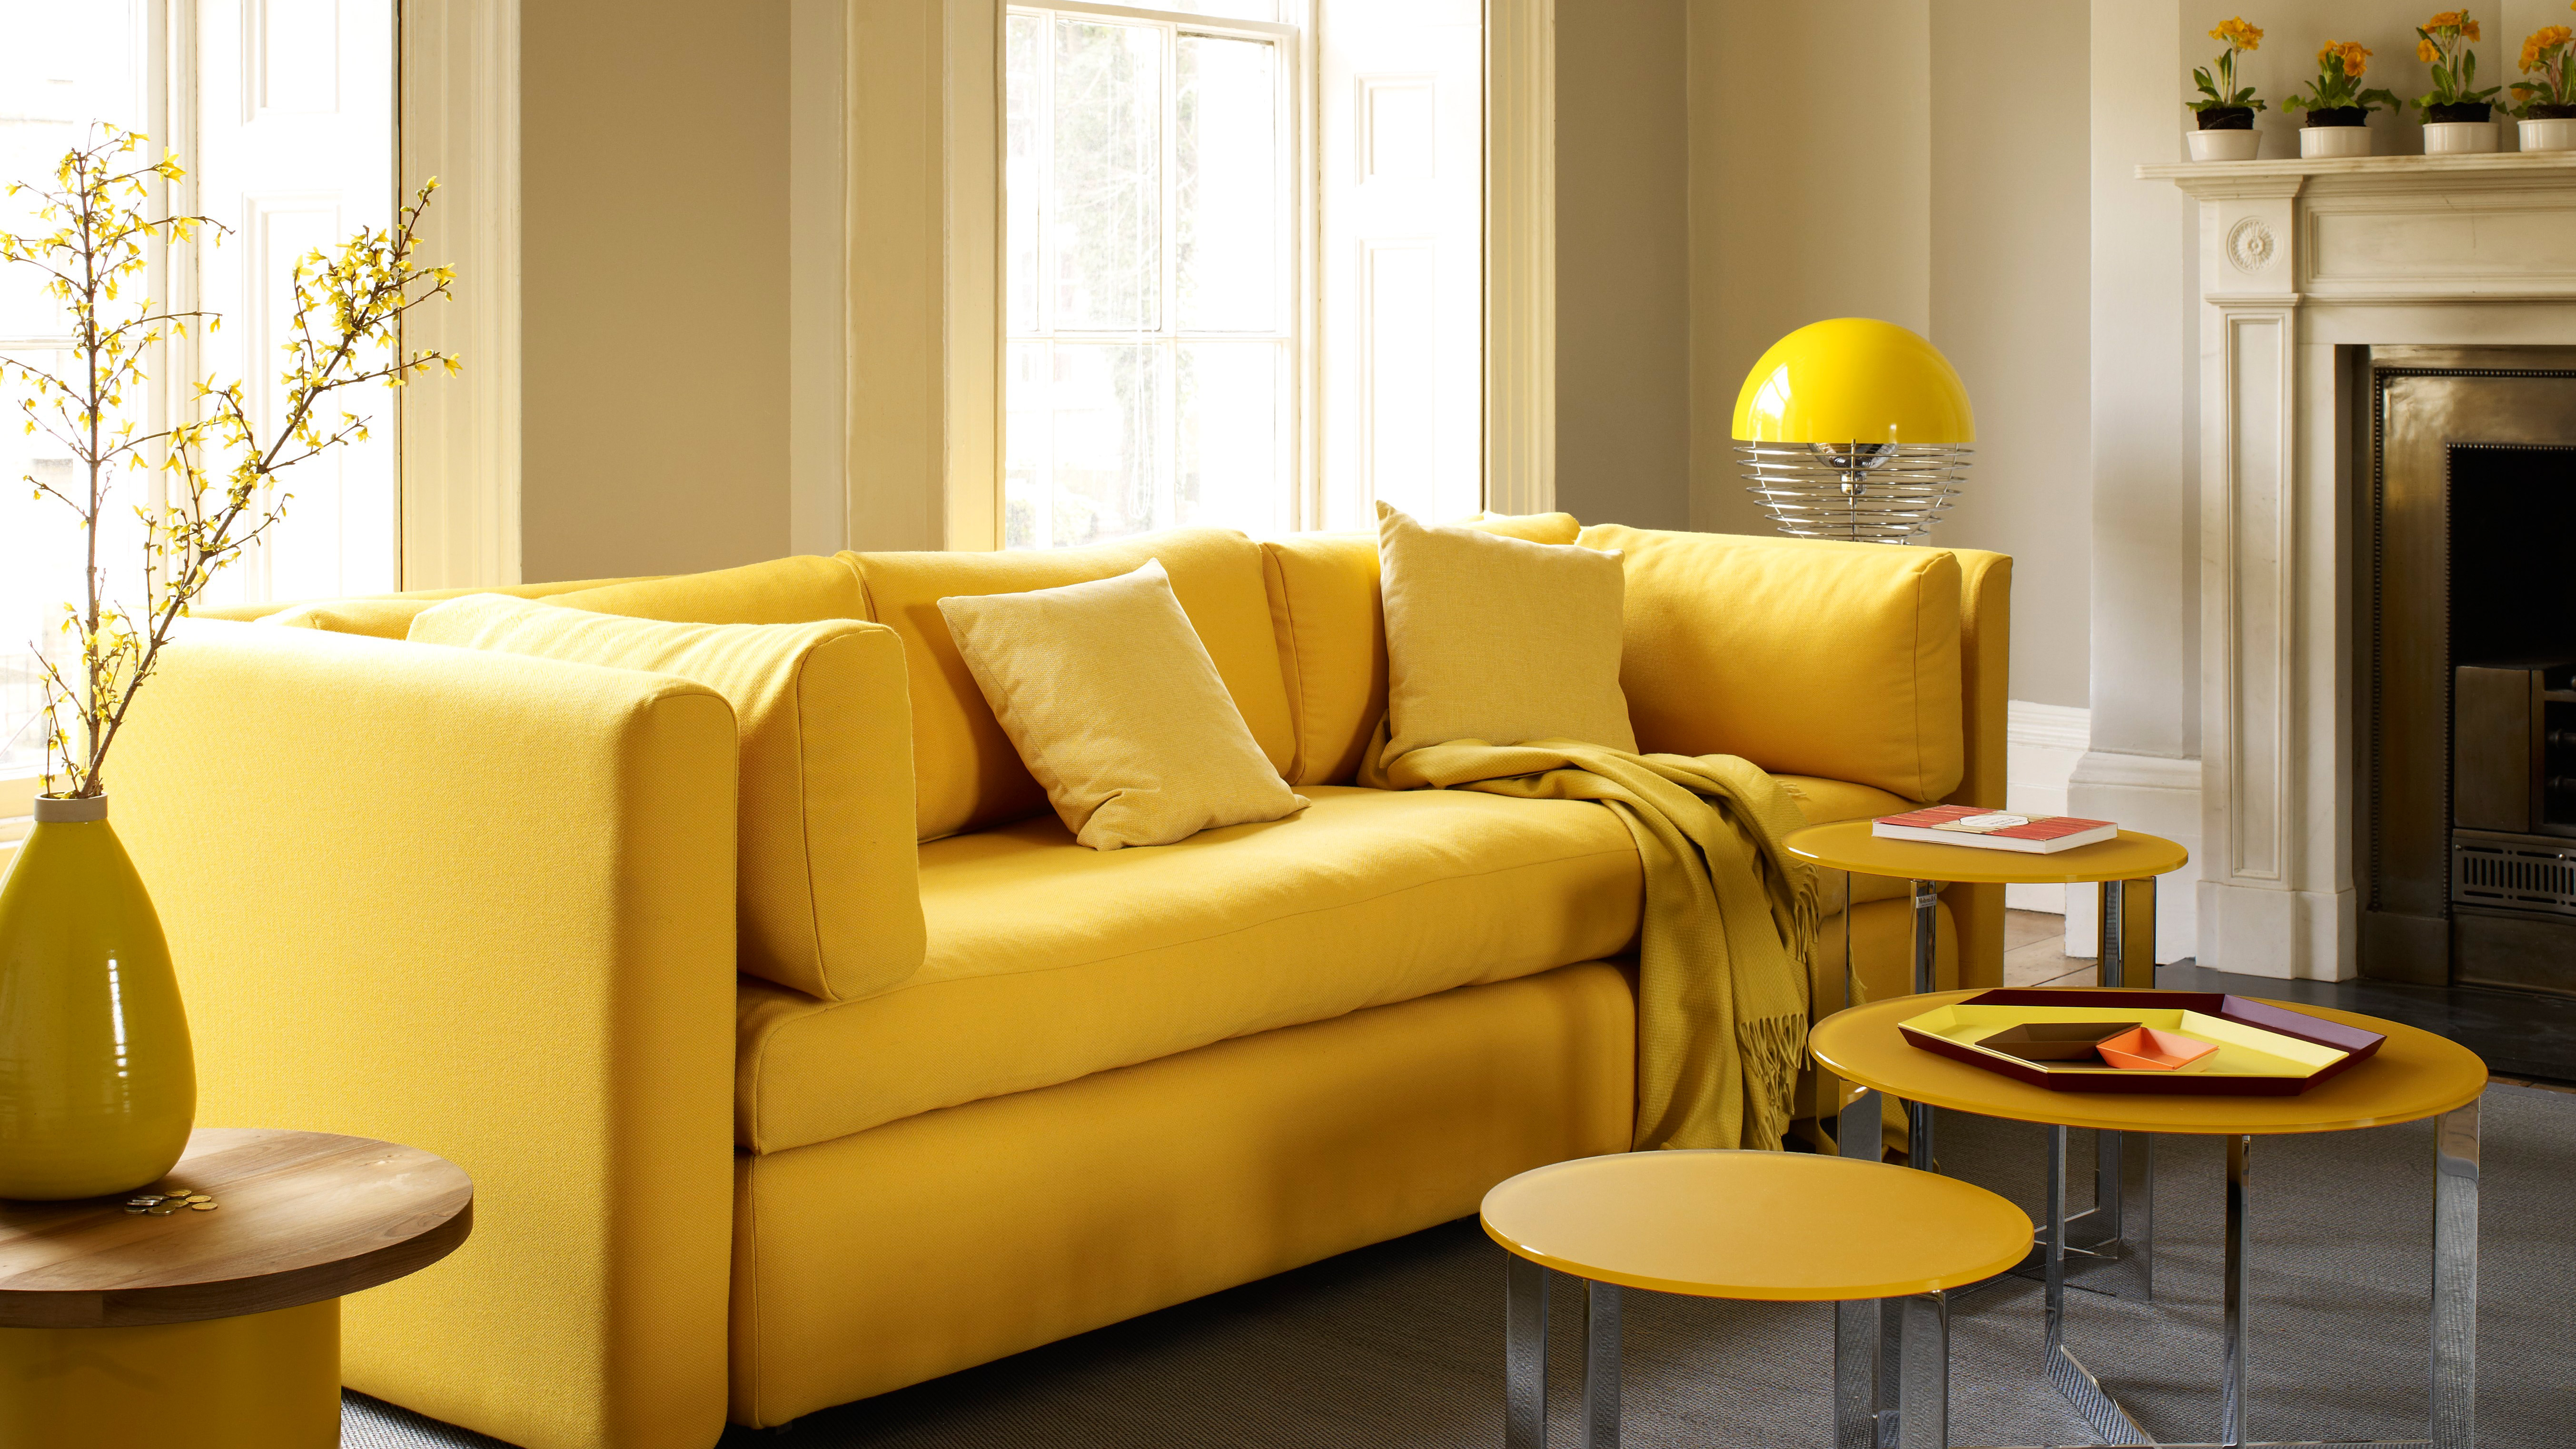 10 Yellow Living Room Ideas How To Do, Yellow Living Room Ideas